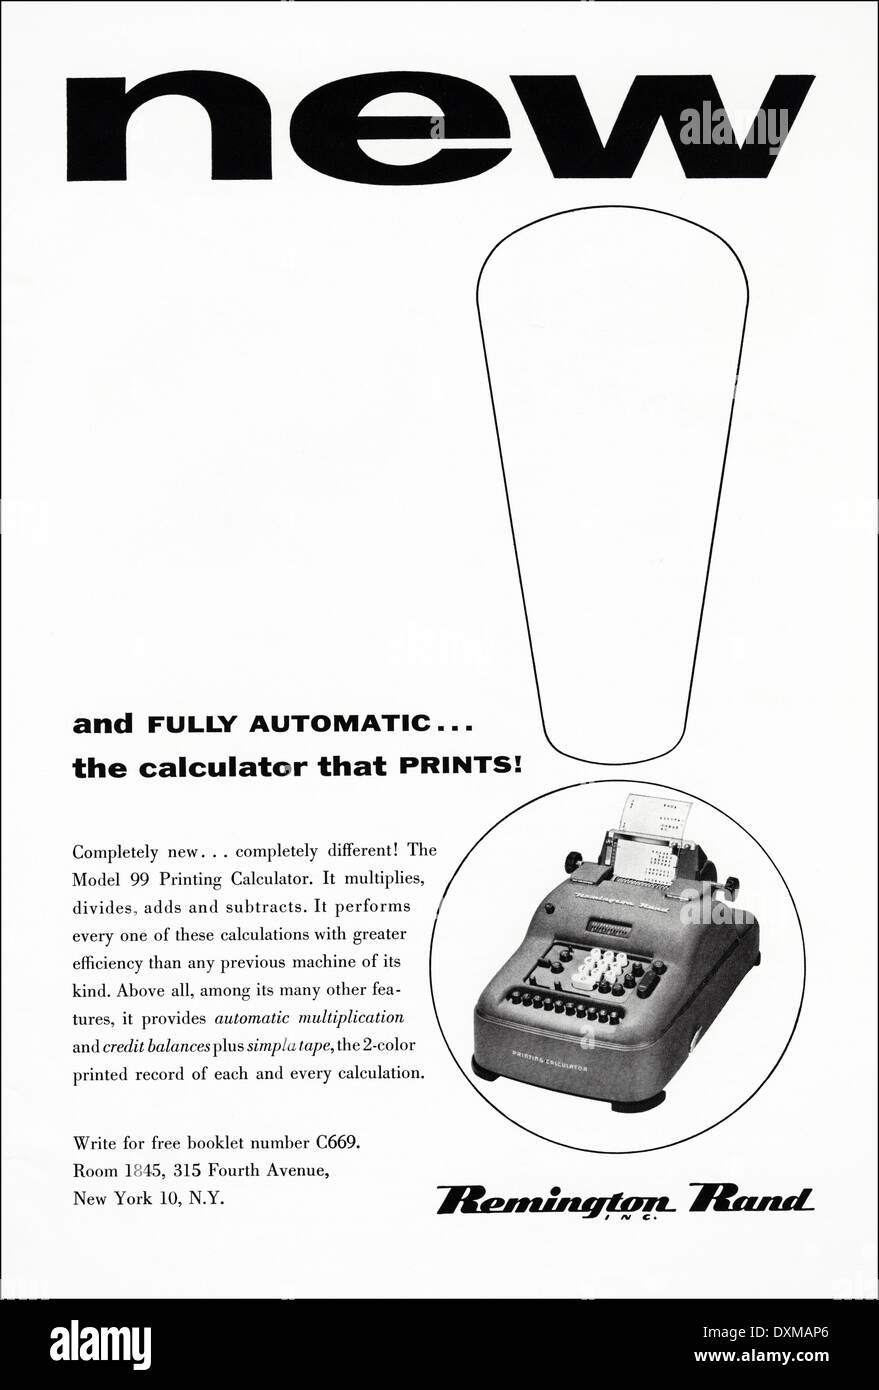 1950s advertisement for Remington Rand calculator advert in American magazine circa 1954 - Stock Image